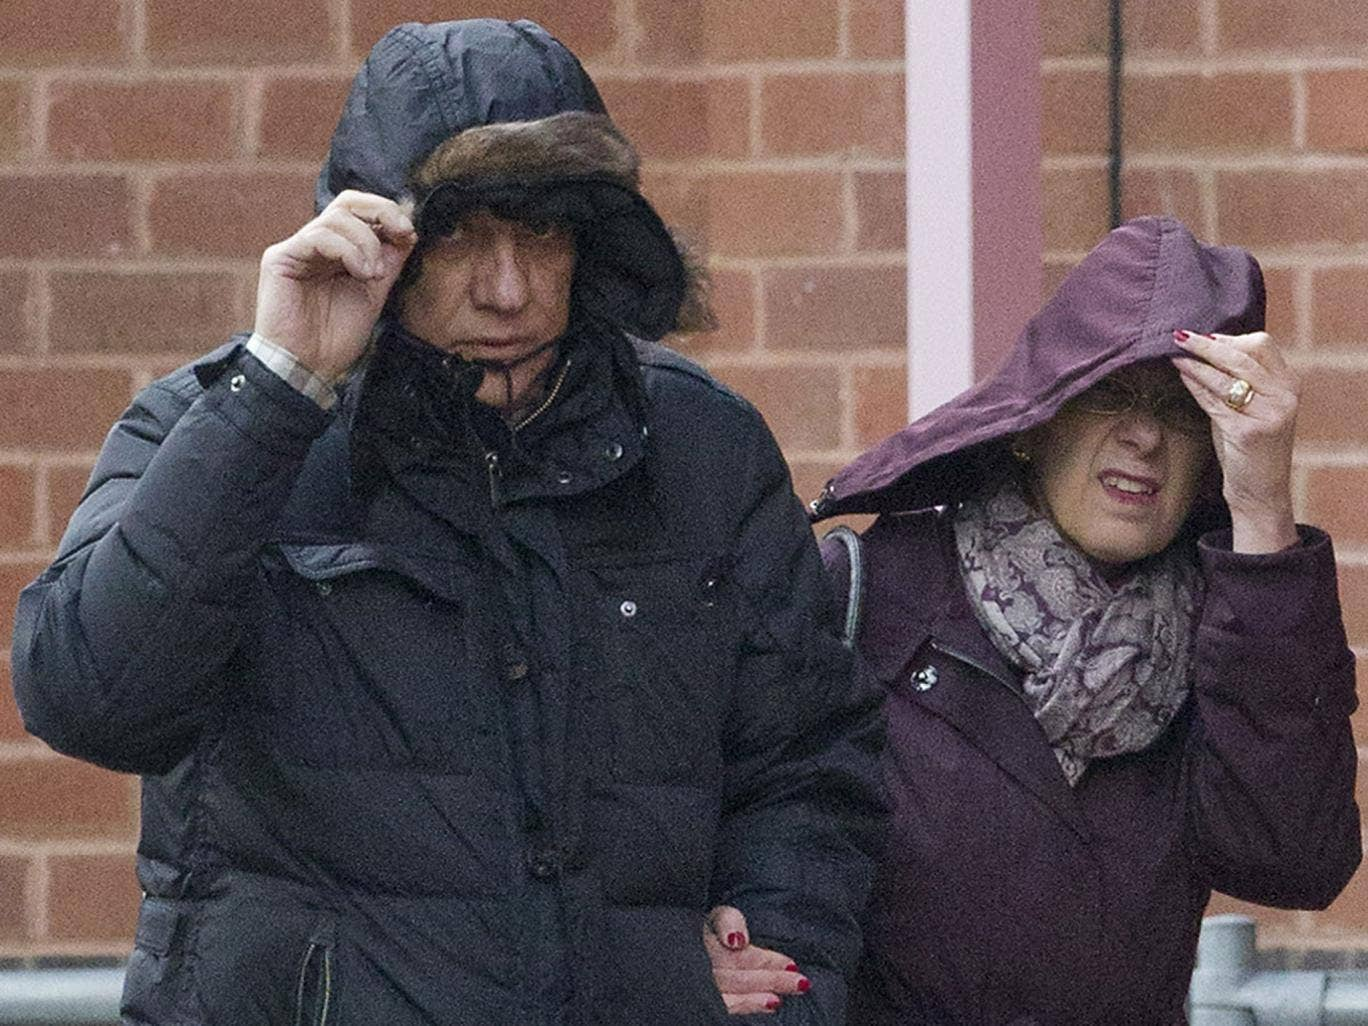 Convicted mafia boss Domenico Rancadore arrives with his wife Anne Skinner to report at Uxbridge Police Station in West London (18 March)